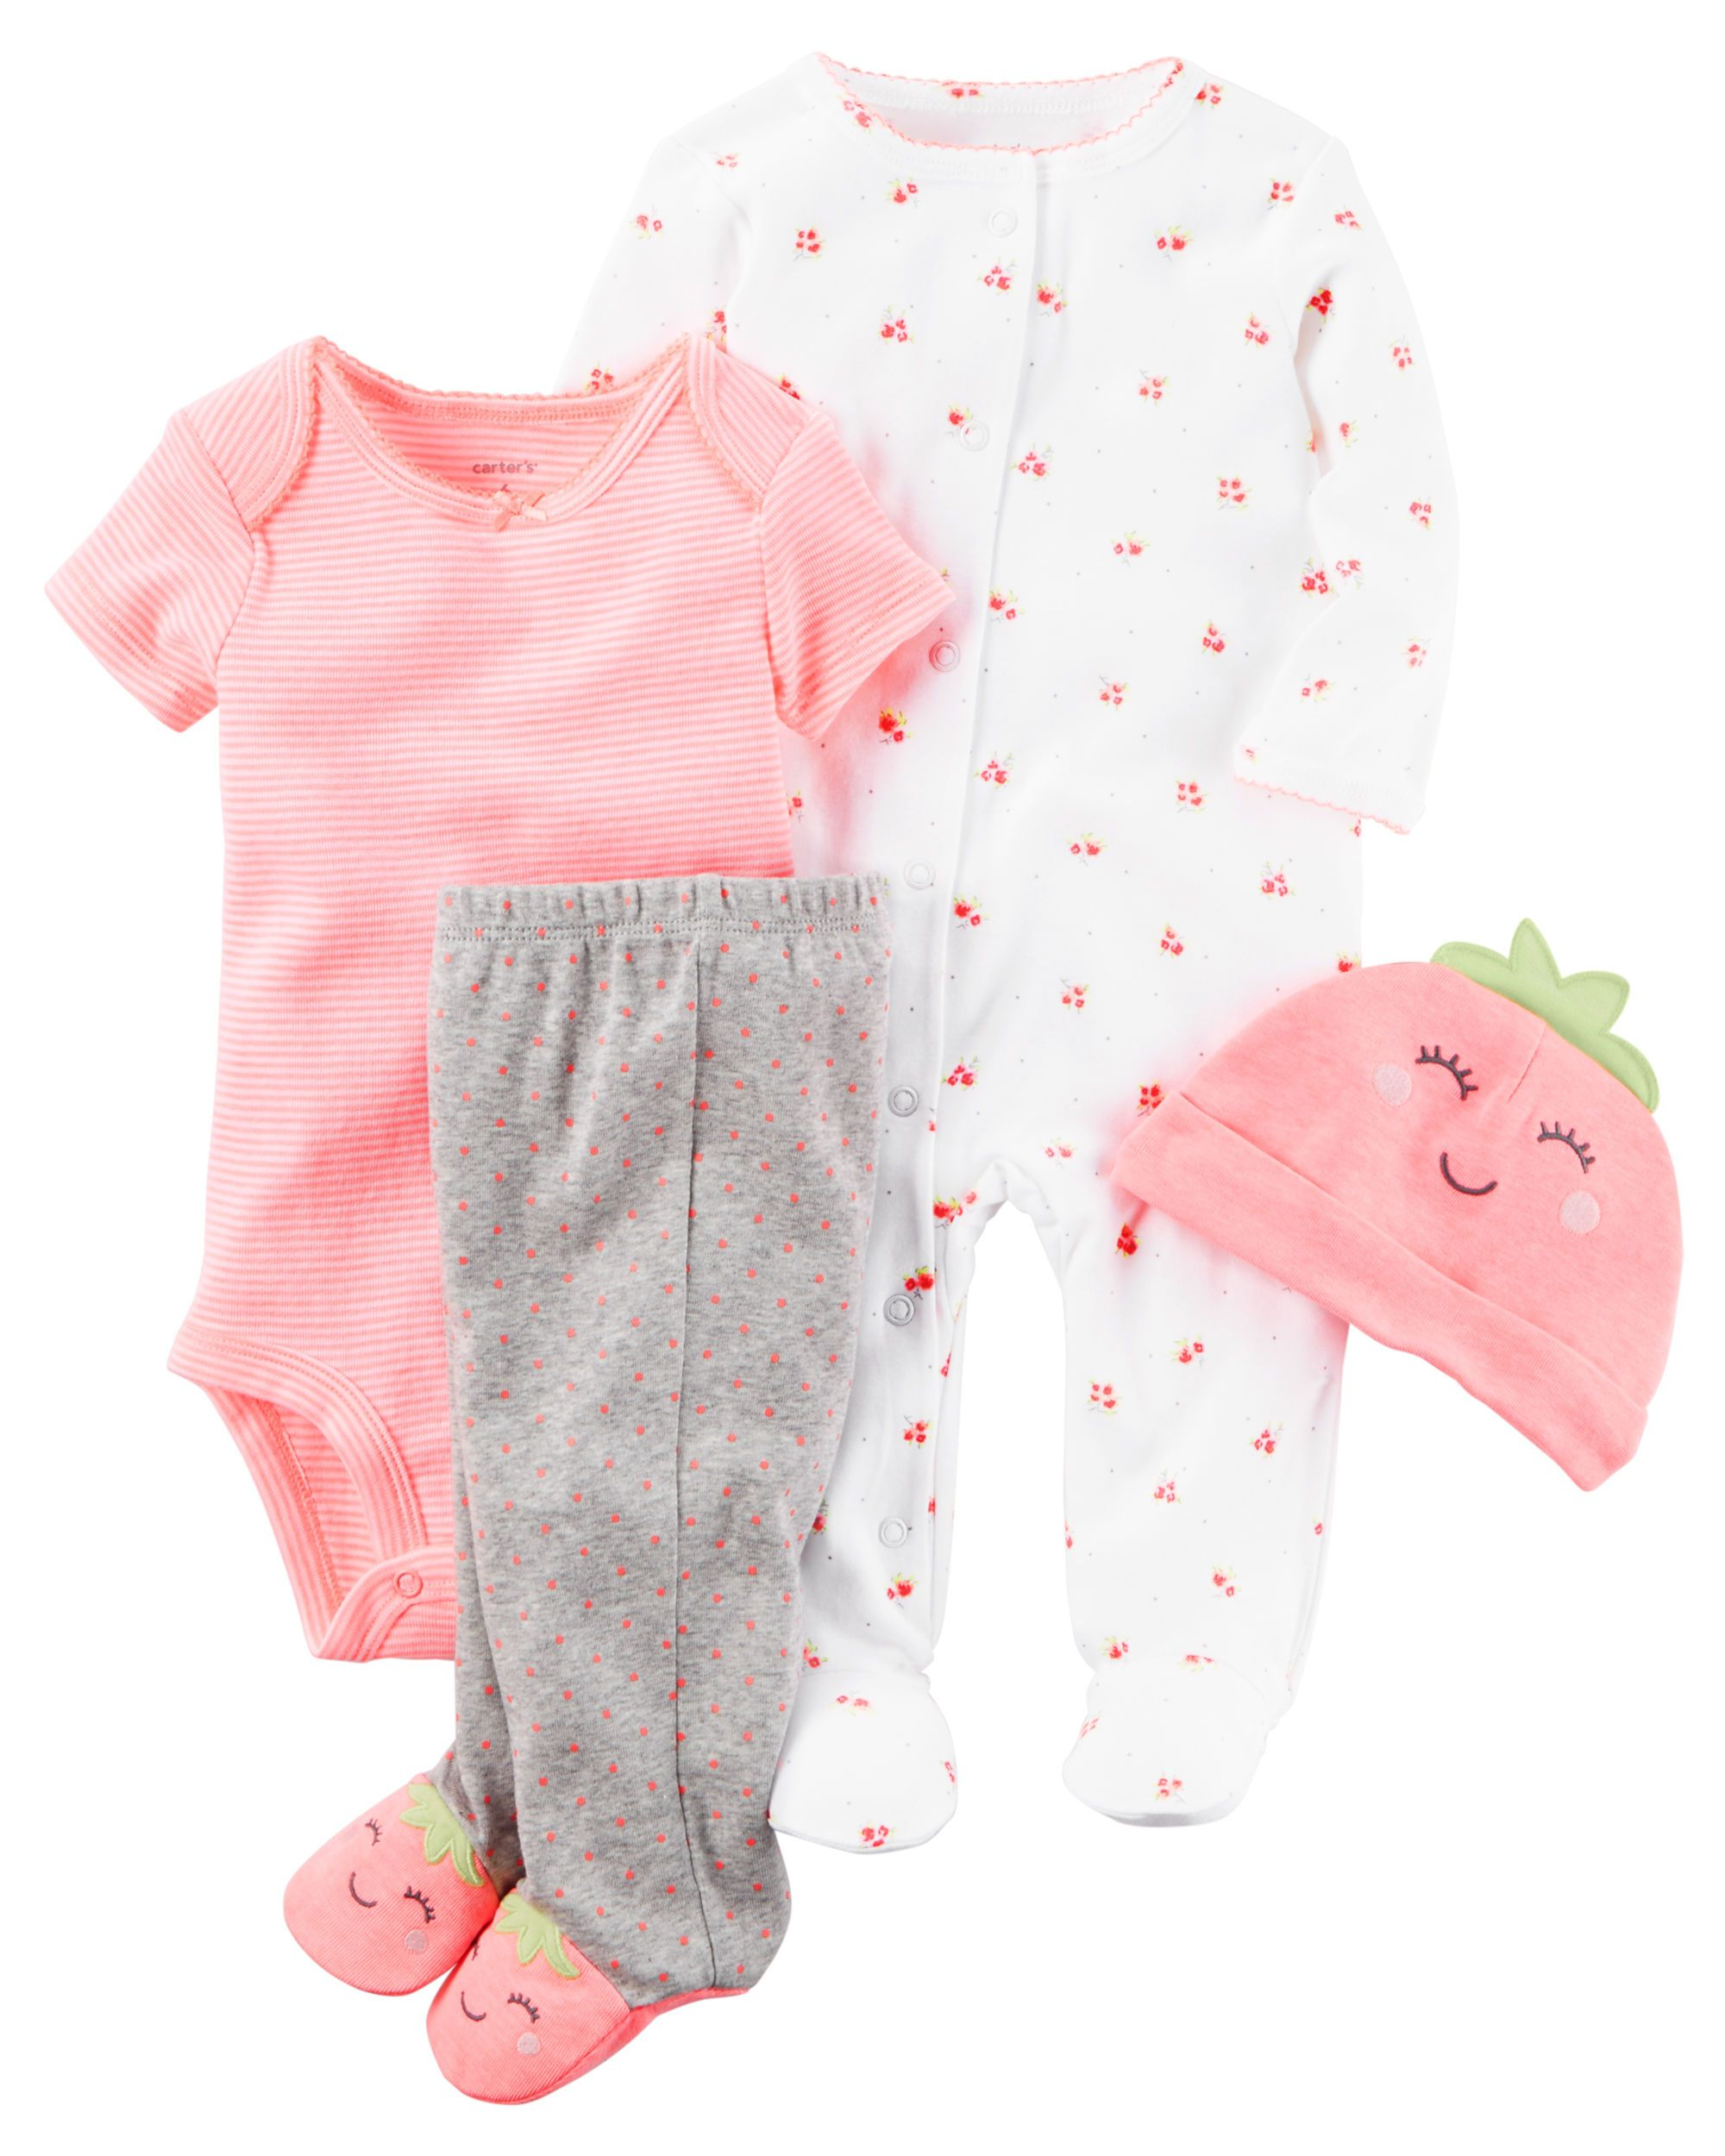 Piece Neon Take Home Set Babies Clothes Clothing